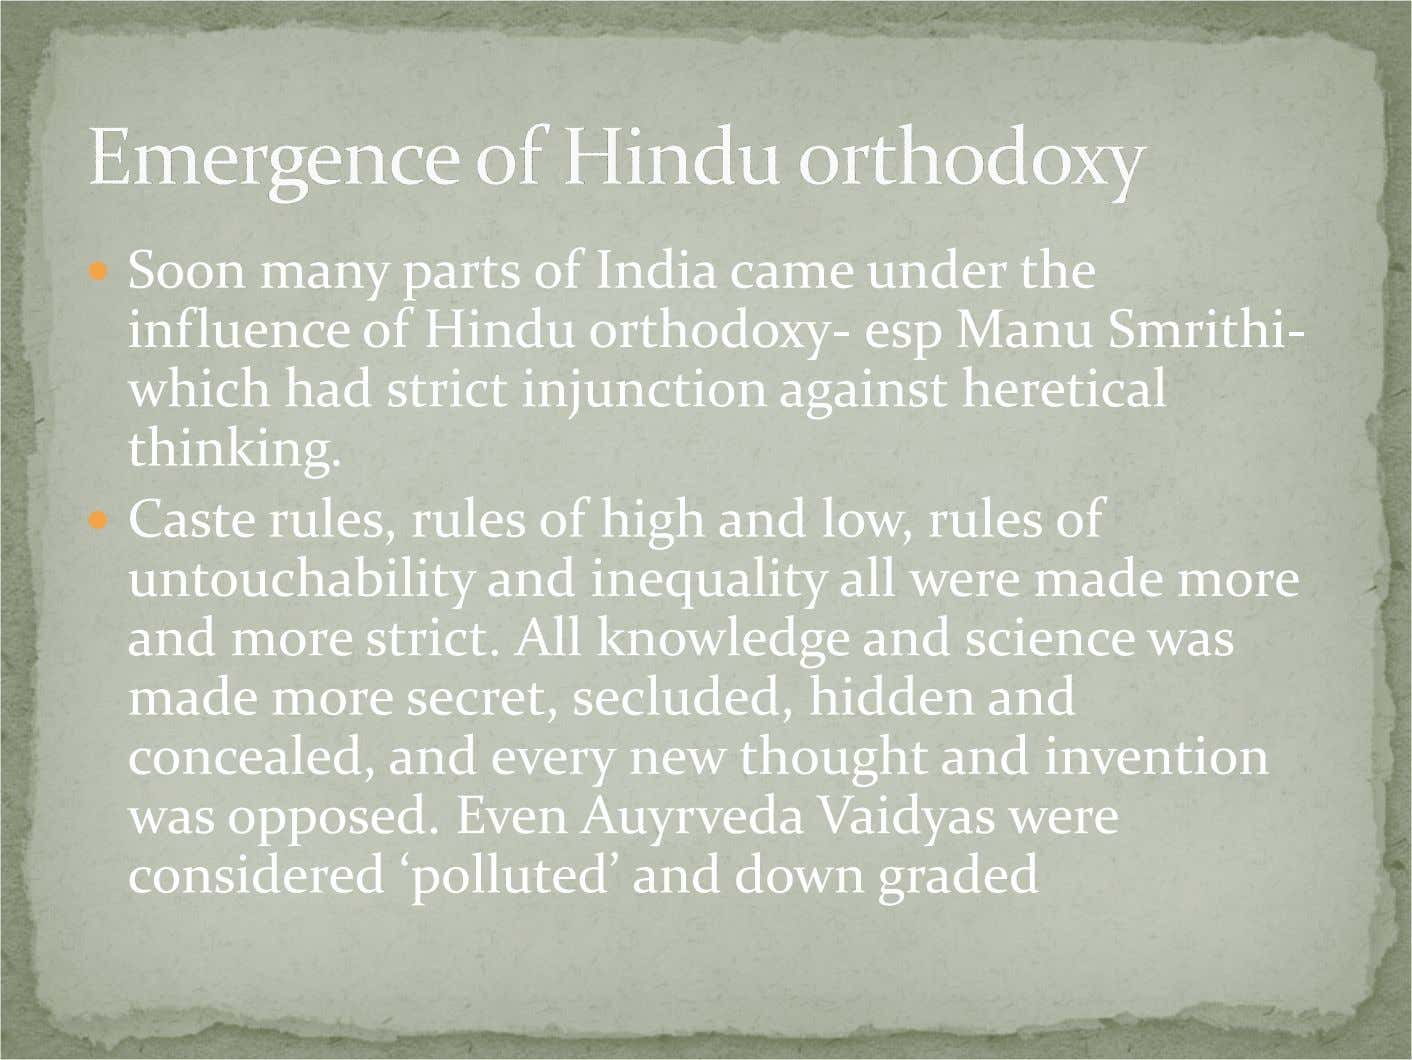 Soon many parts of India came under the influence of Hindu orthodoxy- esp Manu Smrithi-